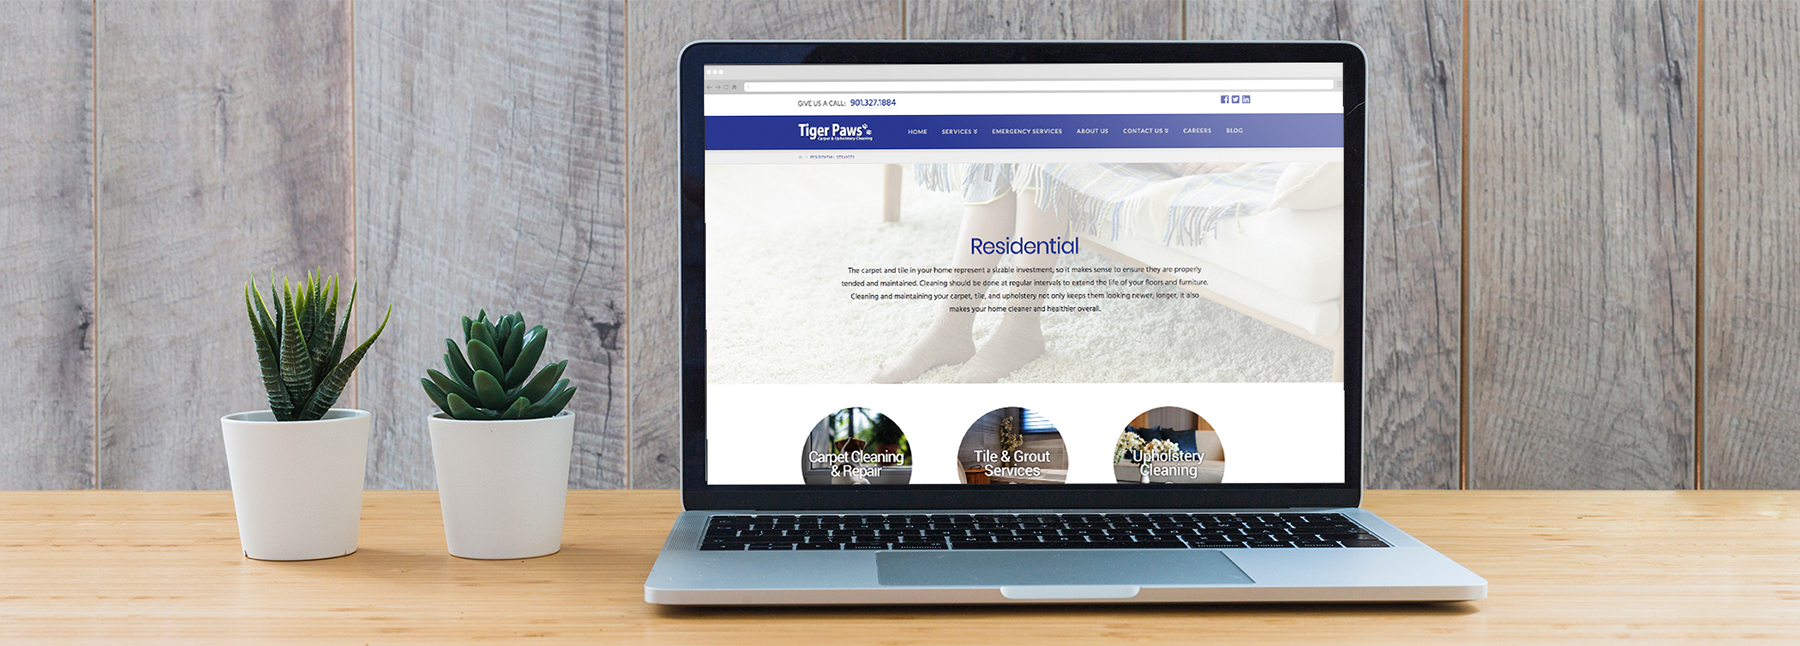 Tigerpaws Website Residential Services